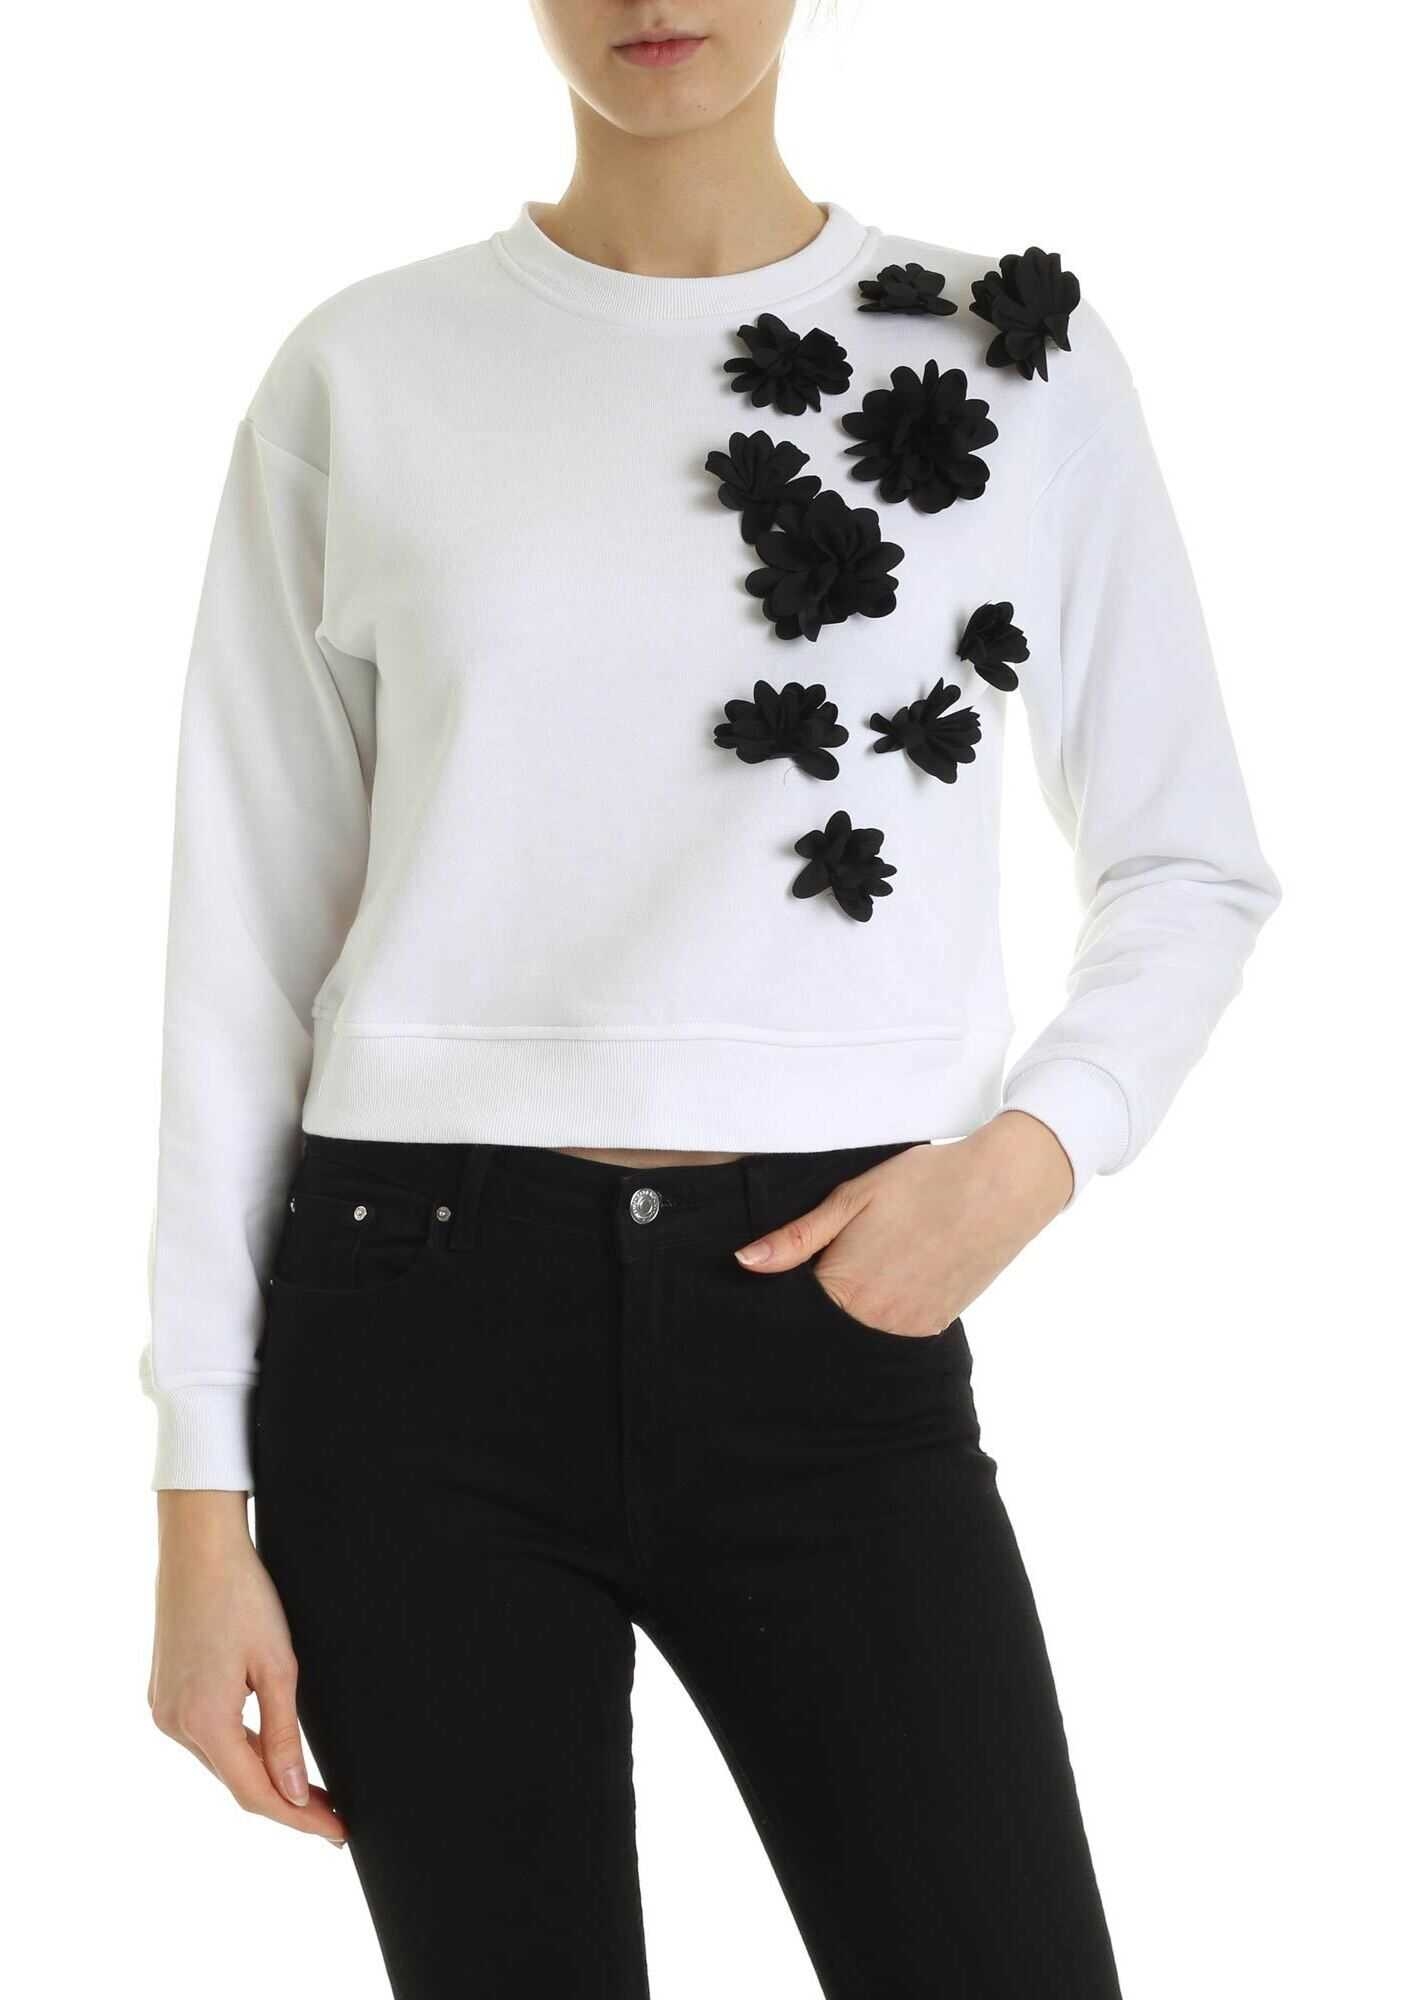 Be Blumarine Sweatshirt In White With Black Floral Details White